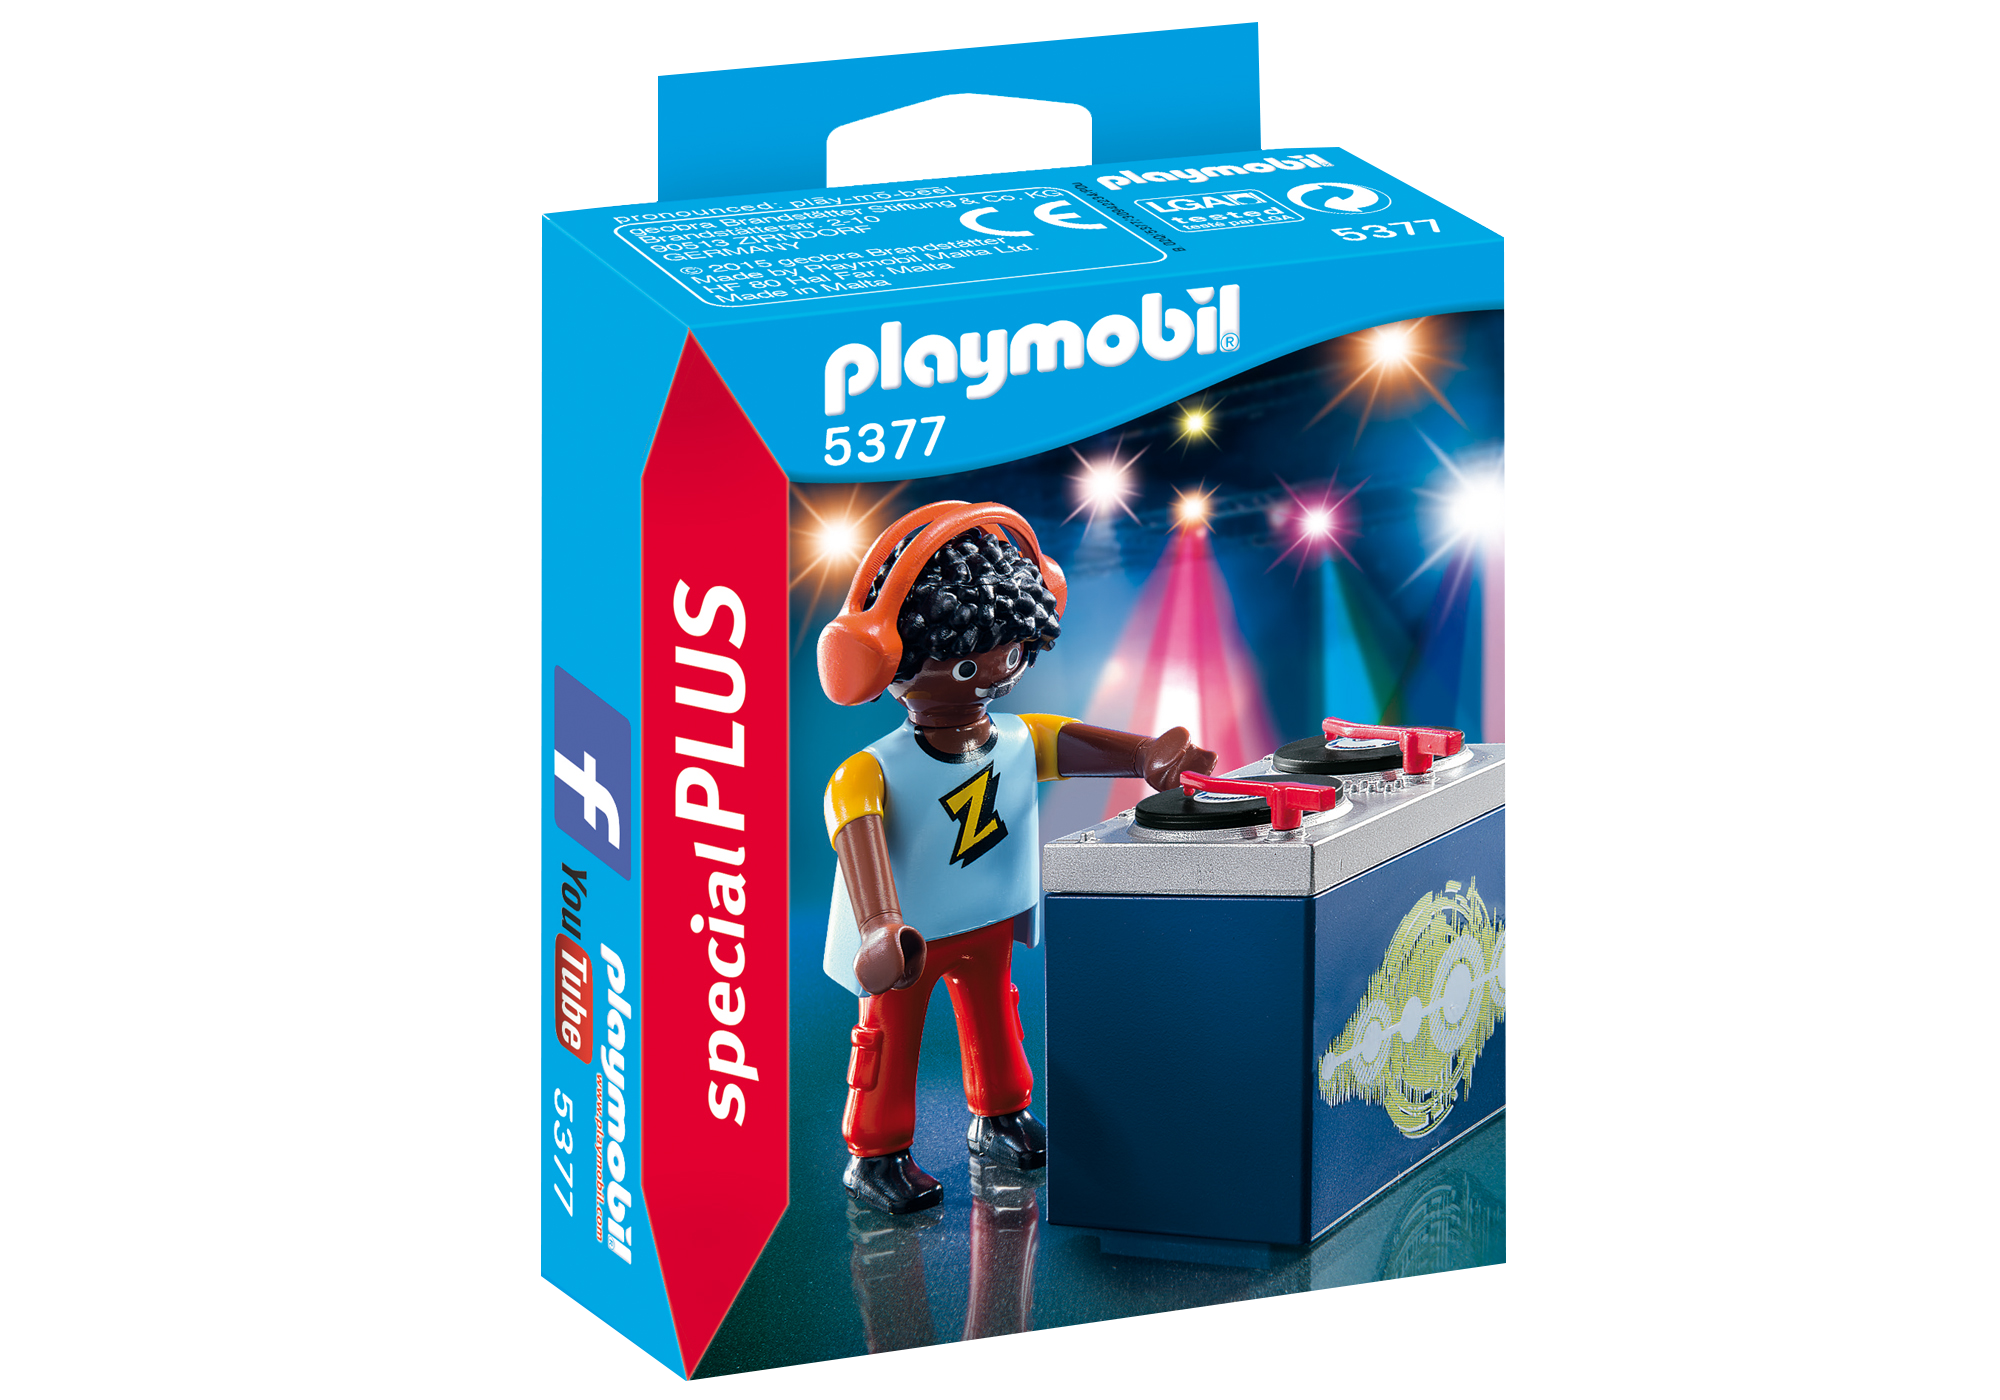 http://media.playmobil.com/i/playmobil/5377_product_box_front